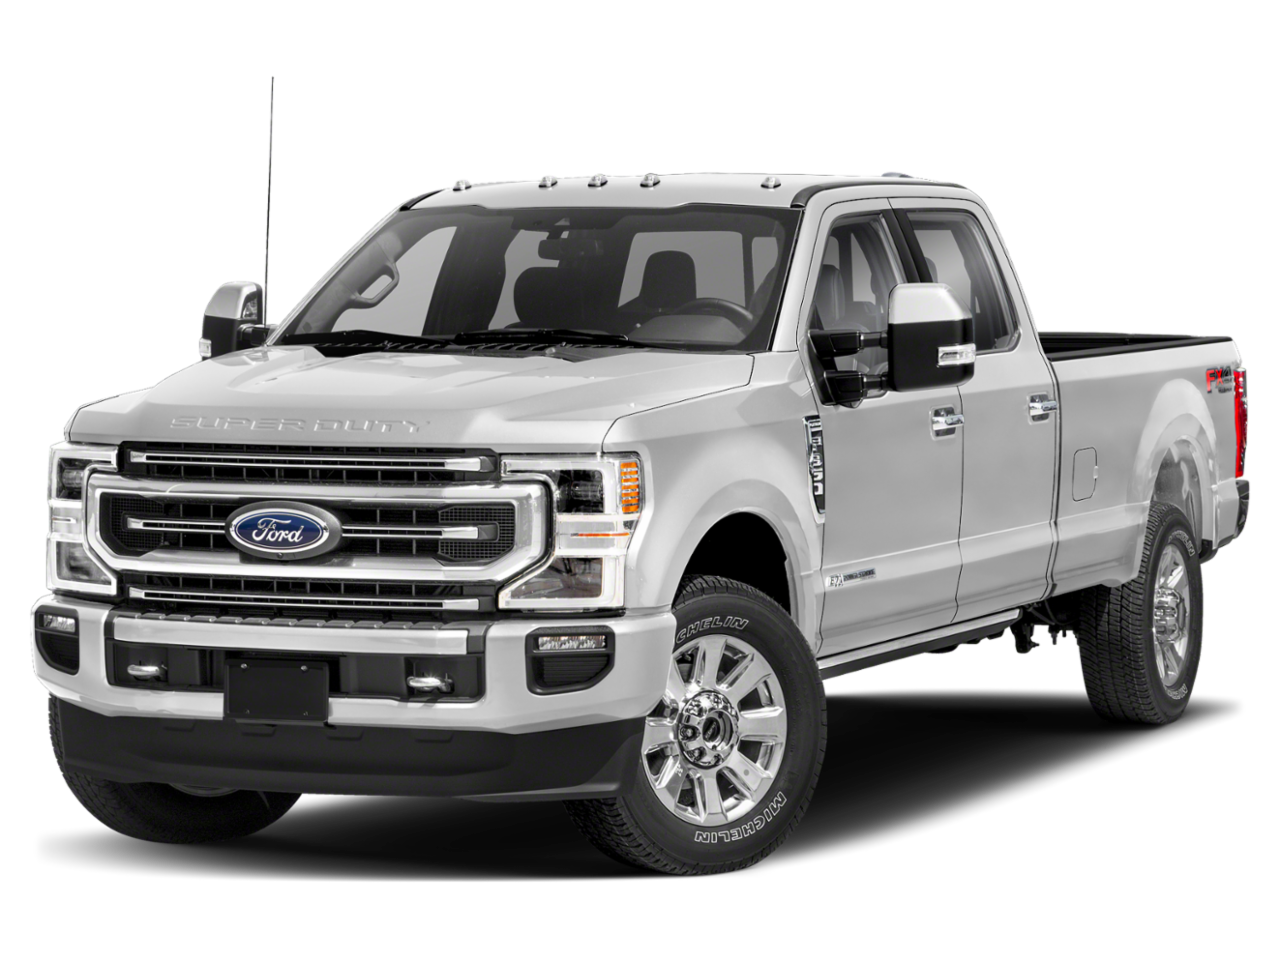 Ford 2021 Super Duty F-350 DRW Platinum